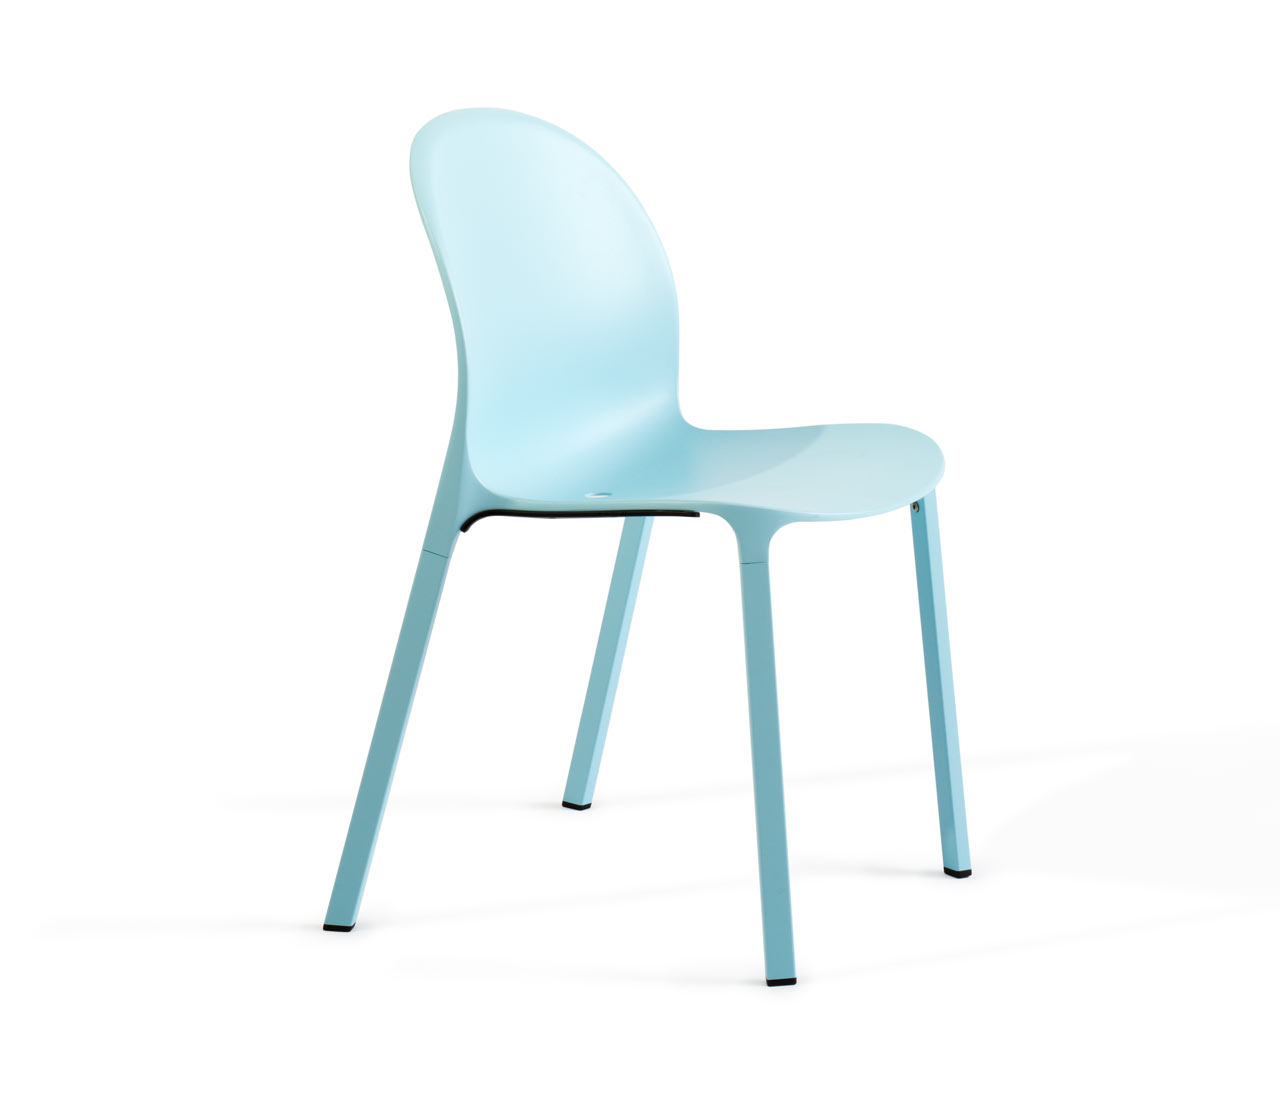 olivares-aluminum-chair